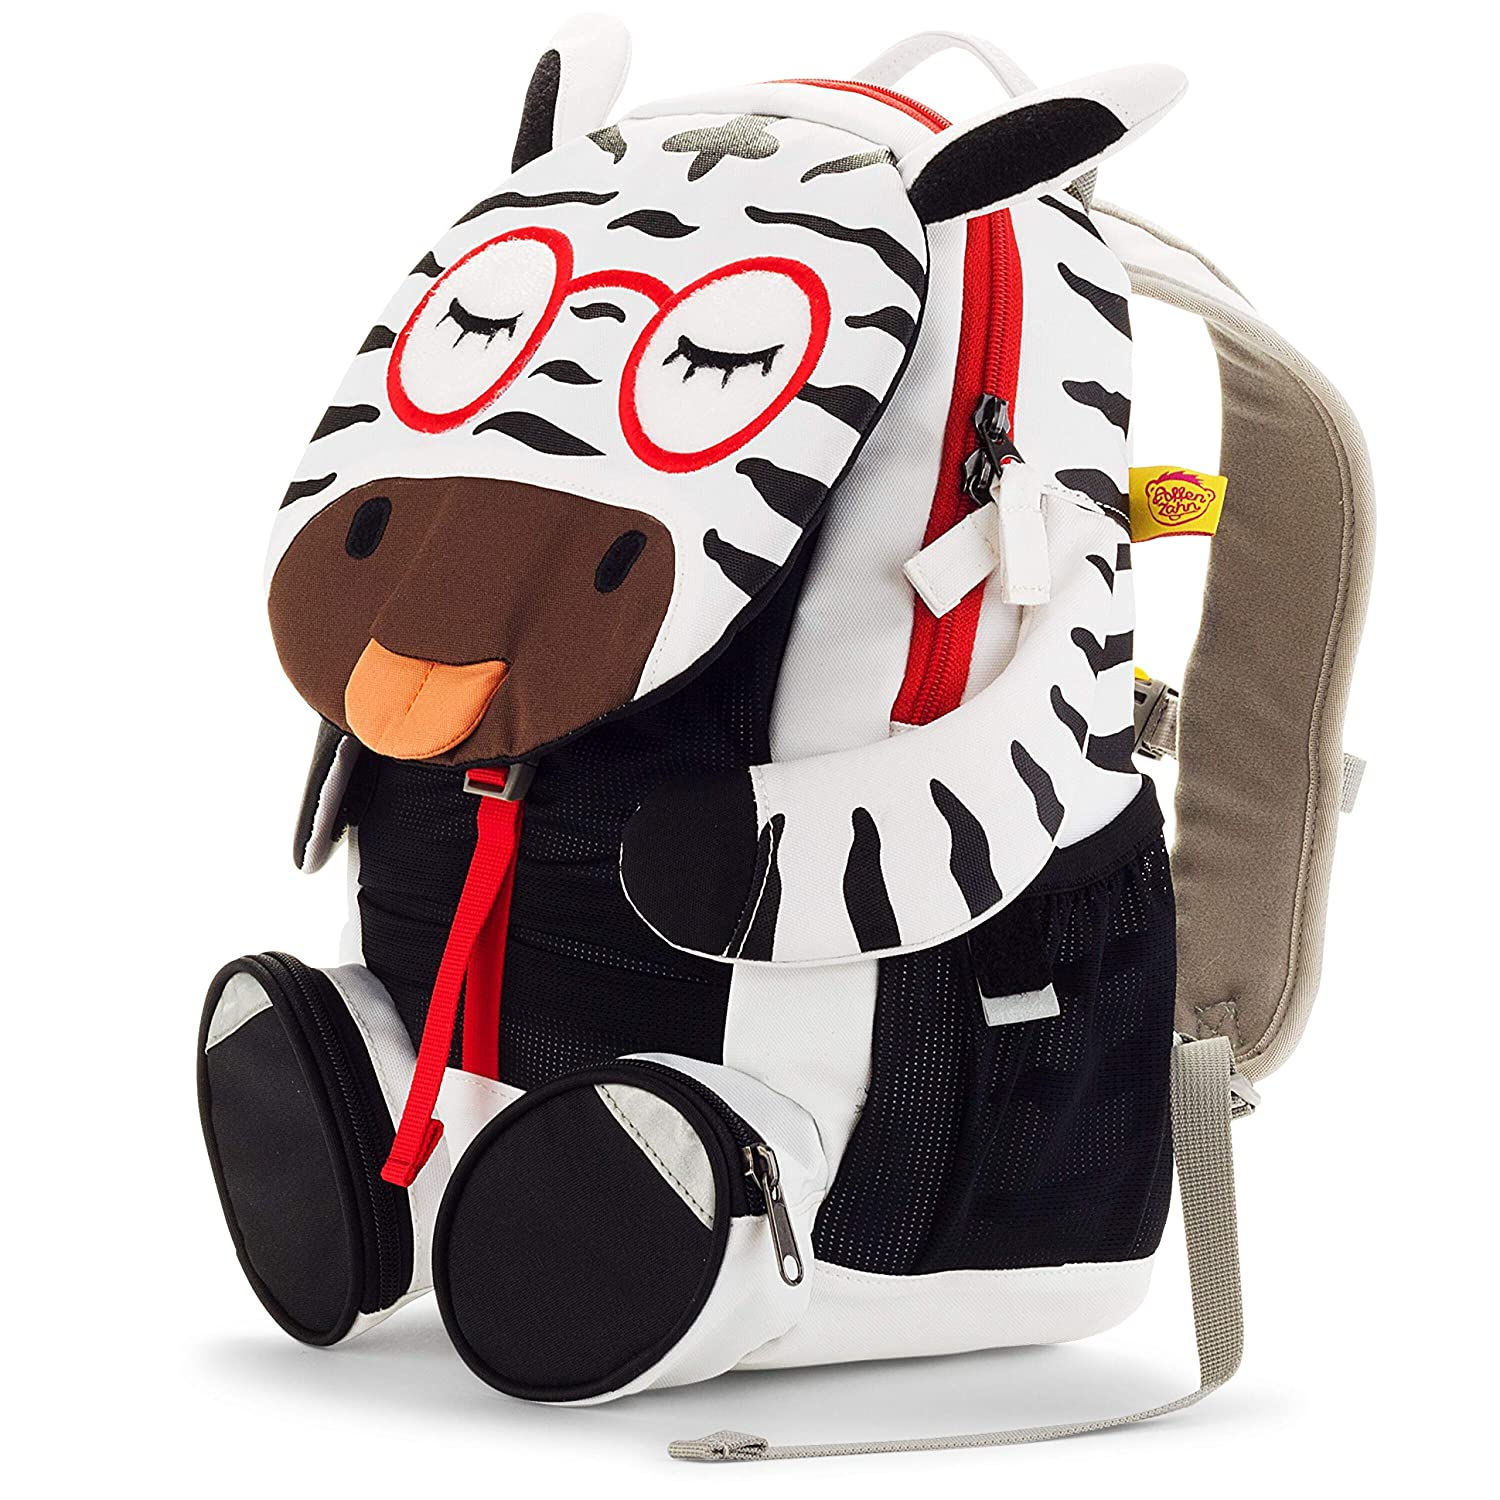 cb5308ee1e Amazon.com  Affenzahn Kindergarten Kids Backpack with Adjustable Chest  Strap for Girls and Boys Preschool from 3-5 years old Zena Zebra white   Musical ...